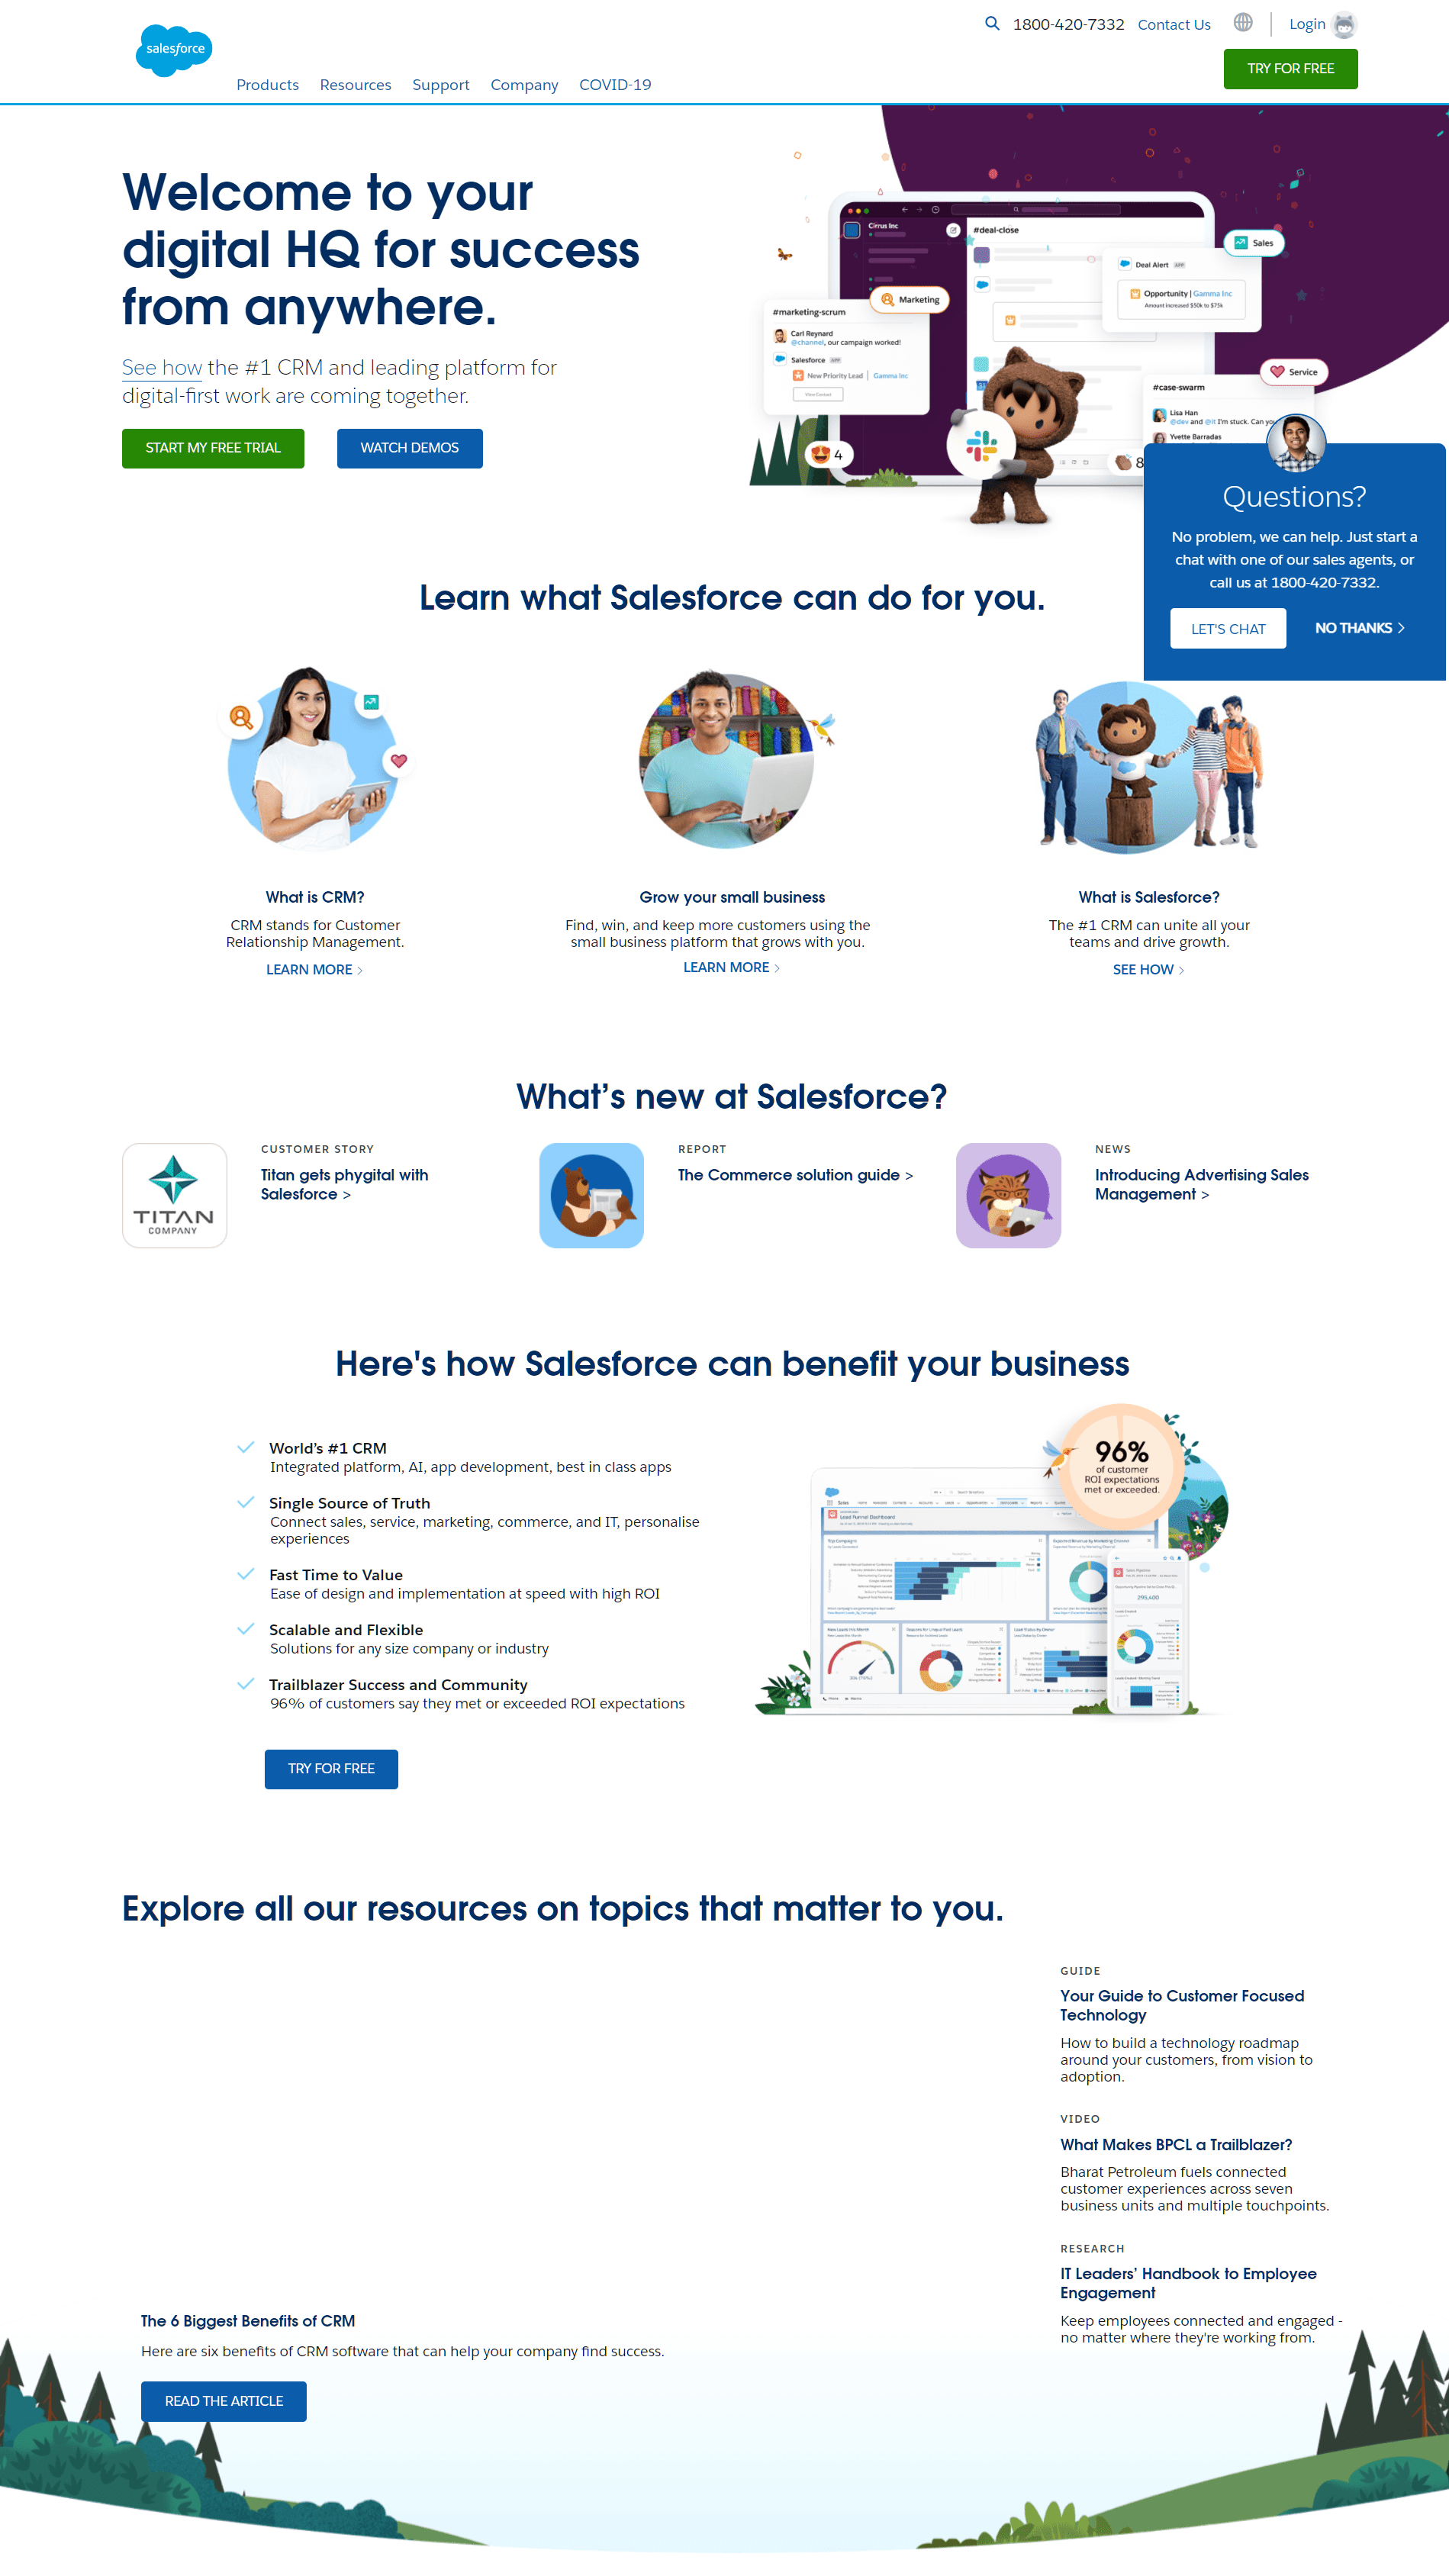 Salesforce product pages